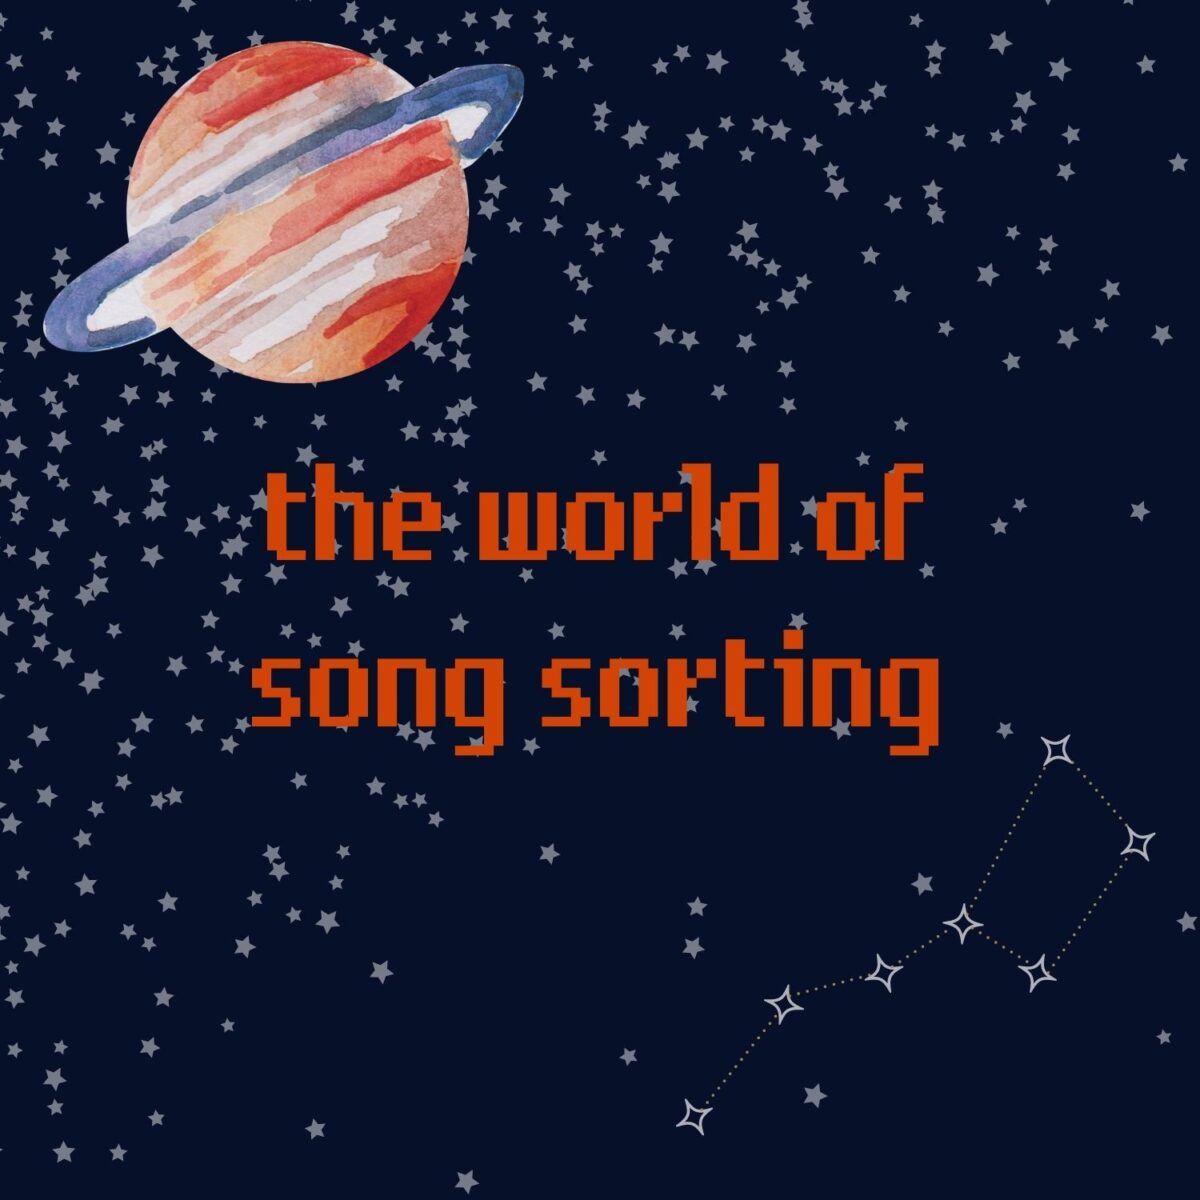 """A dark blue background with tiny faded white stars overlaid atop. The little dipper constellation is in the bottom right corner. In the upper left hand corner, there is a watercolor blue and reddish orange planet with rings around it. In the center of the image there is pixelated text that reads """"the world of song sorting"""" in all lowercase. That text is the same reddish orange as the planet in the upper left hand corner."""